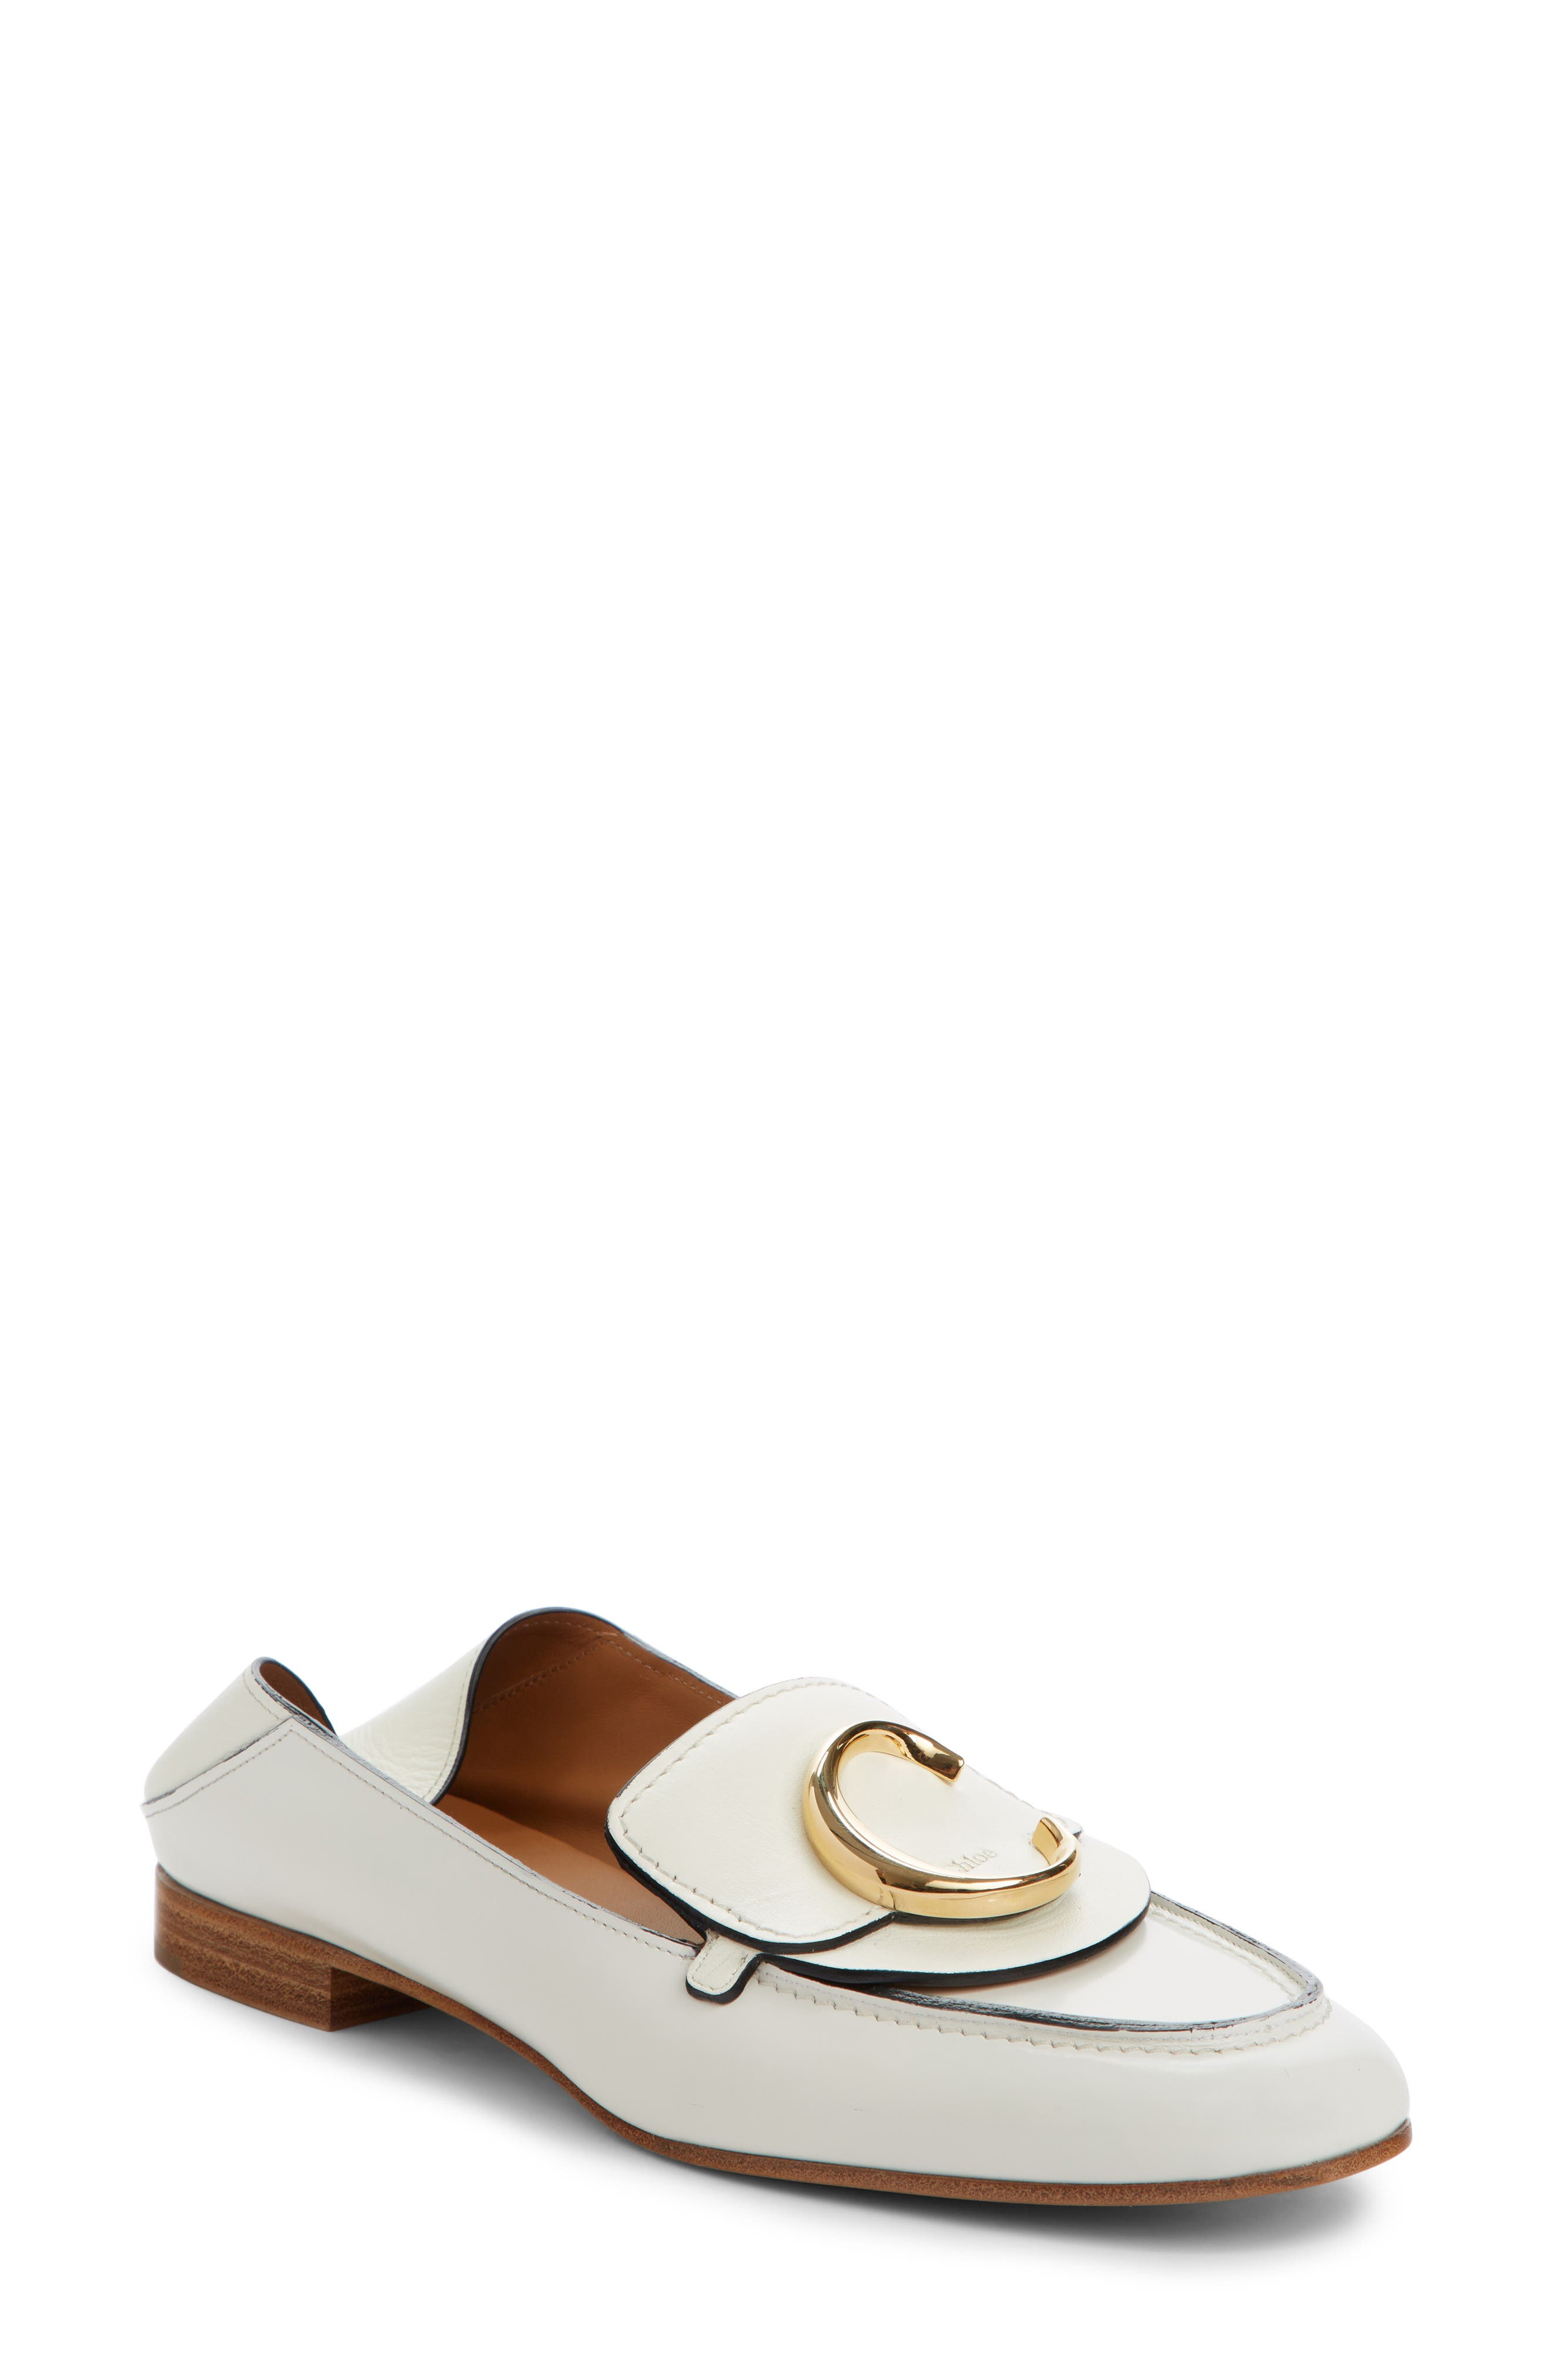 Chloe Story Convertible Loafer - White